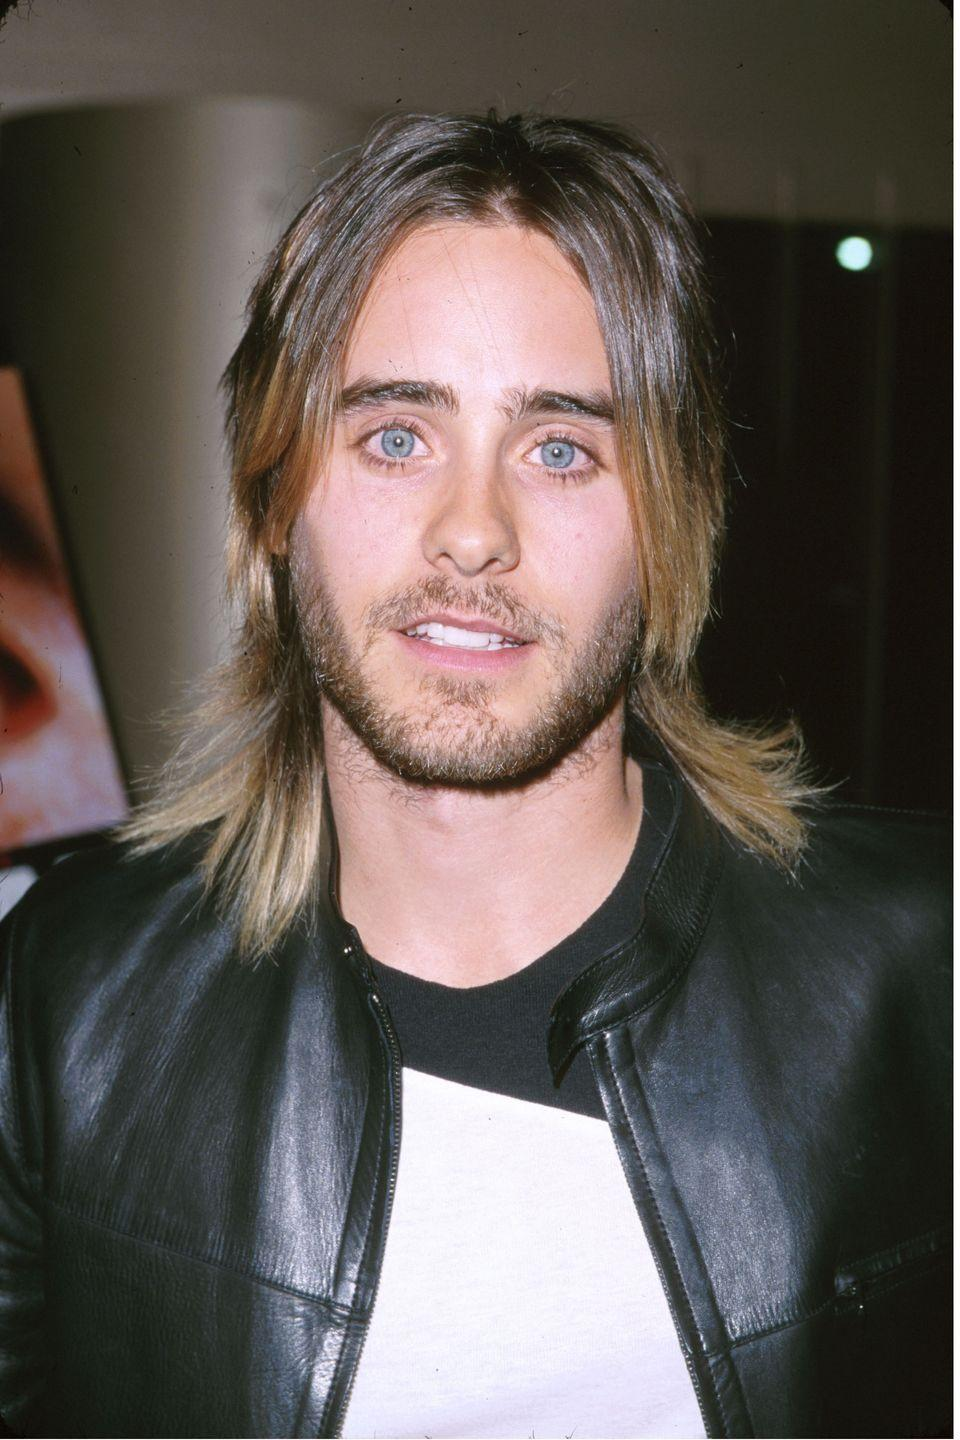 <p>Beginning his career on <em>My So-Called Life</em>, Leto became beloved by fans when he starred in movies like <em>Fight Club, American Psycho, Requiem for a Dream, </em>and later formed the band 30 Seconds to Mars with his brother.  </p>